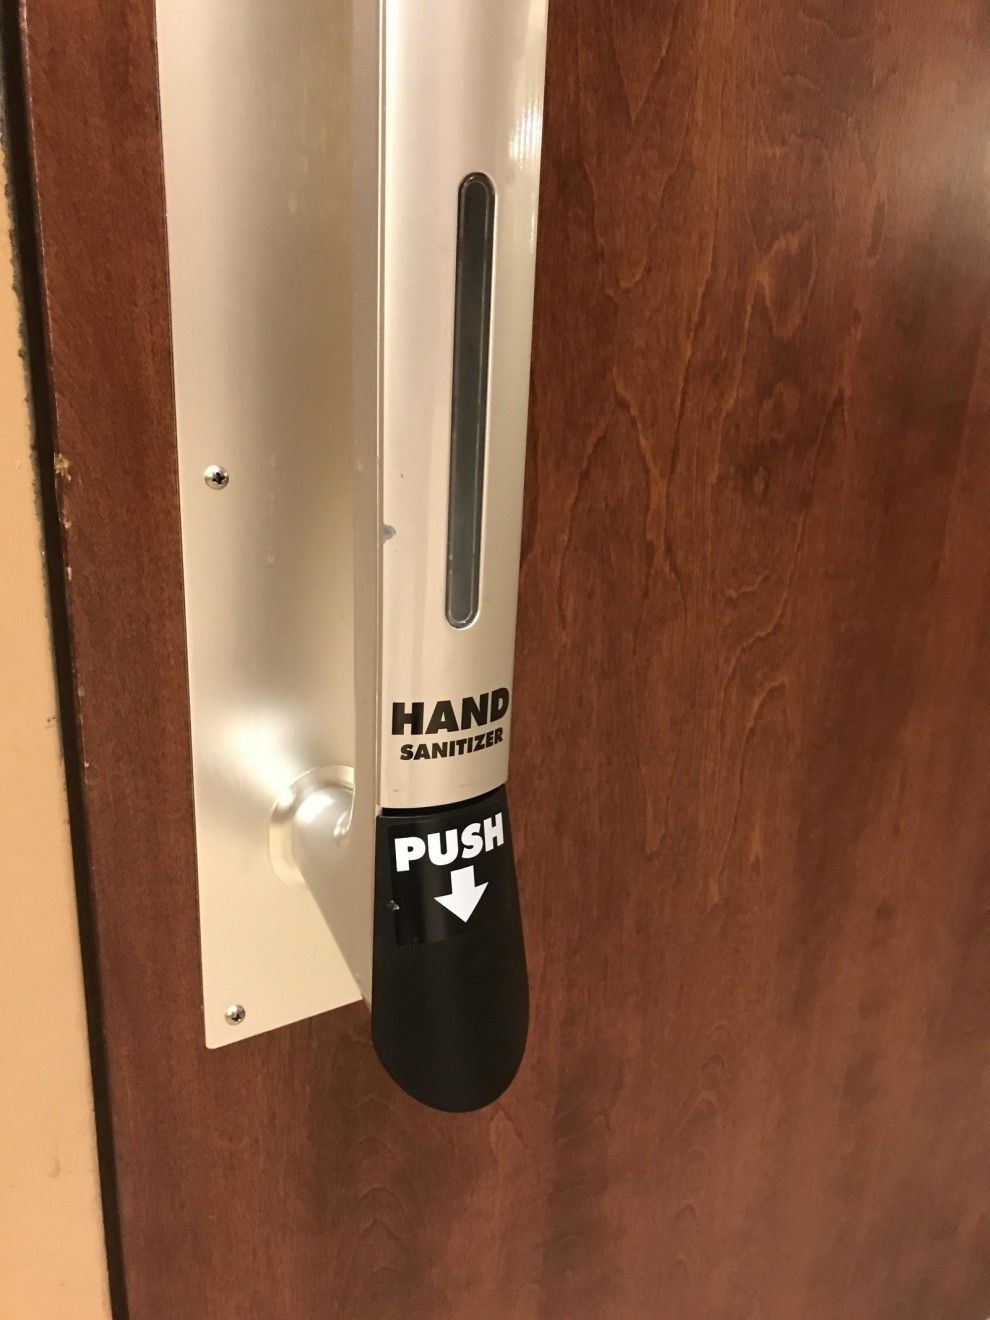 This Hand Sanitizer Dispenser Attached To A Bathroom Door Handle